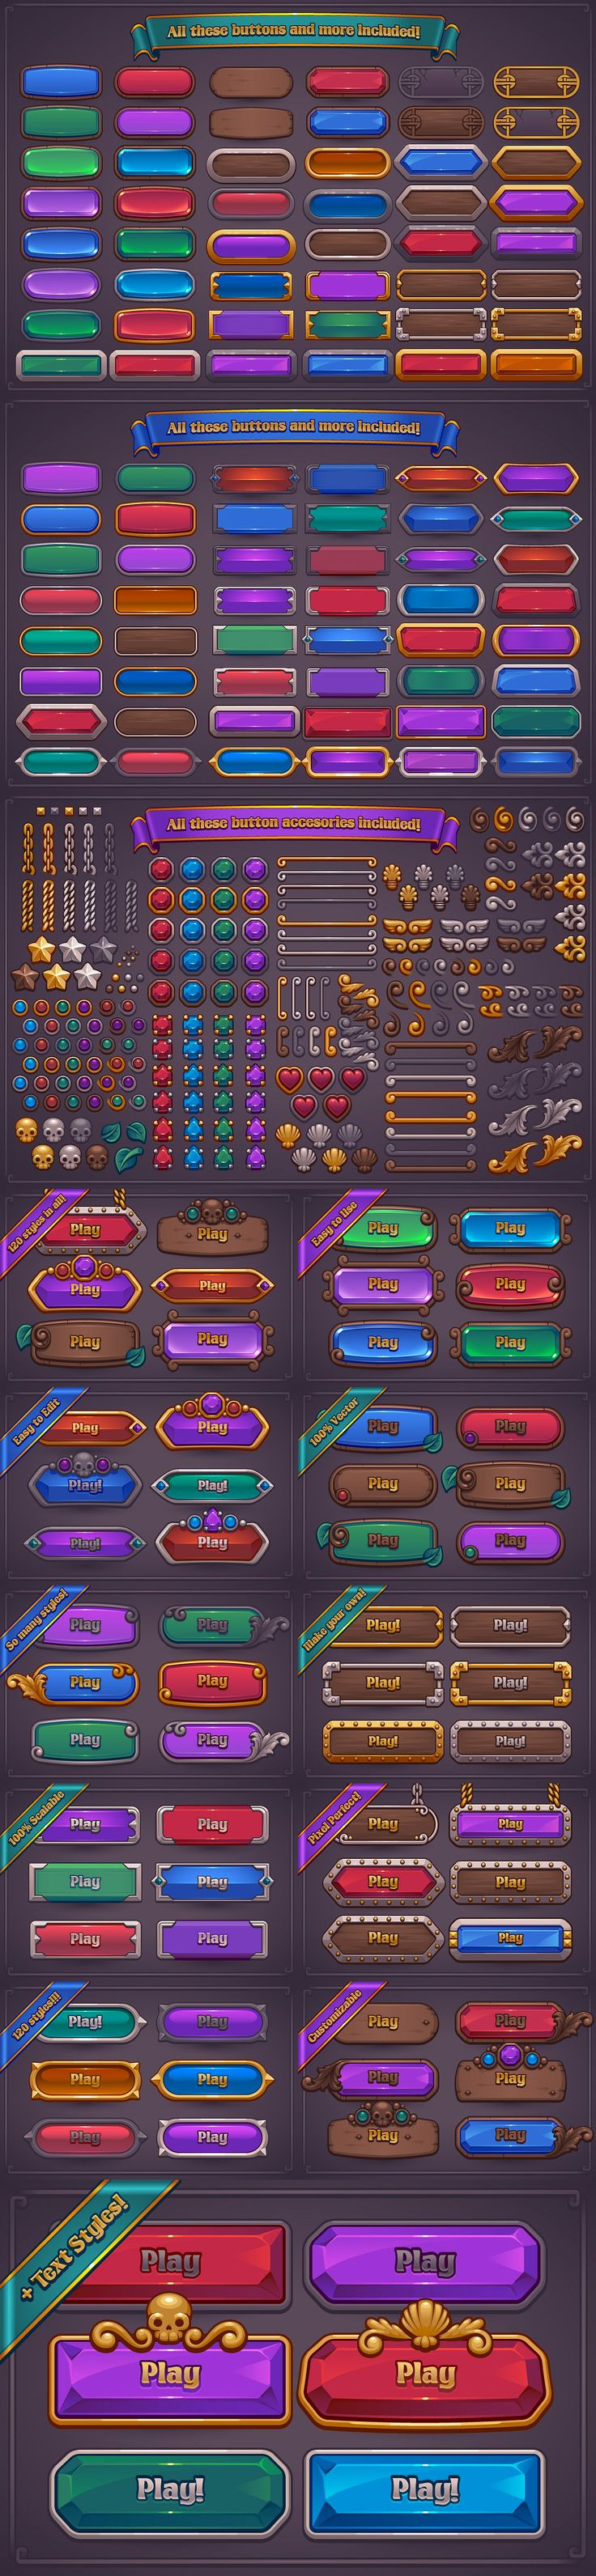 Easily customize beautiful fantasy themed buttons with this set. Includes 120 unique button bases, as well as a huge accessory kit to add flourish and intricate details to your buttons if you so choose.  These styles are perfect for any fantasy themed casual game, website, product packaging or other fantasy themed project.  100% Vector - 100% Scalable - 100% Re-sizable - Unlimited Resolution - Pixel Perfect Design!